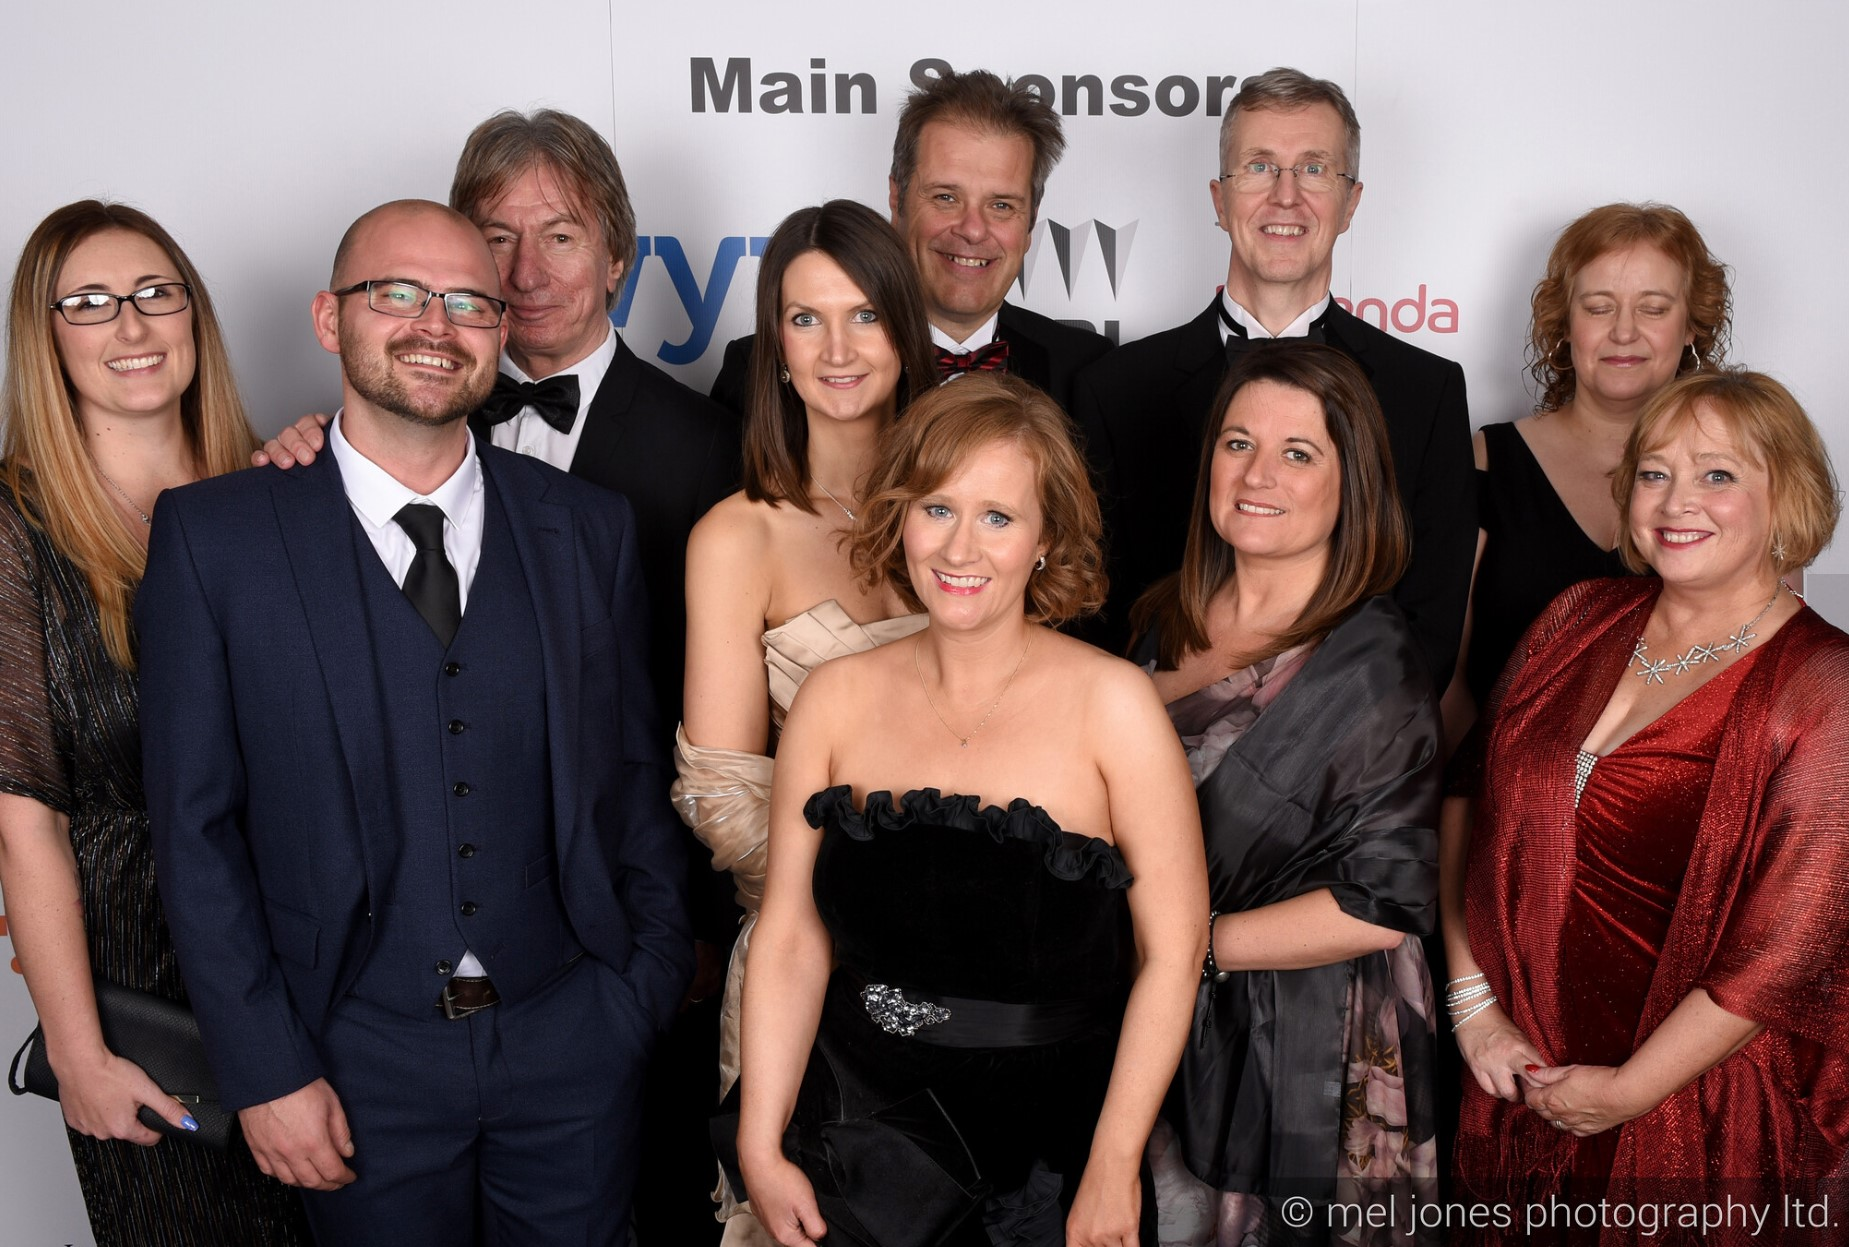 The Jones Harris team at Wyre Business Awards